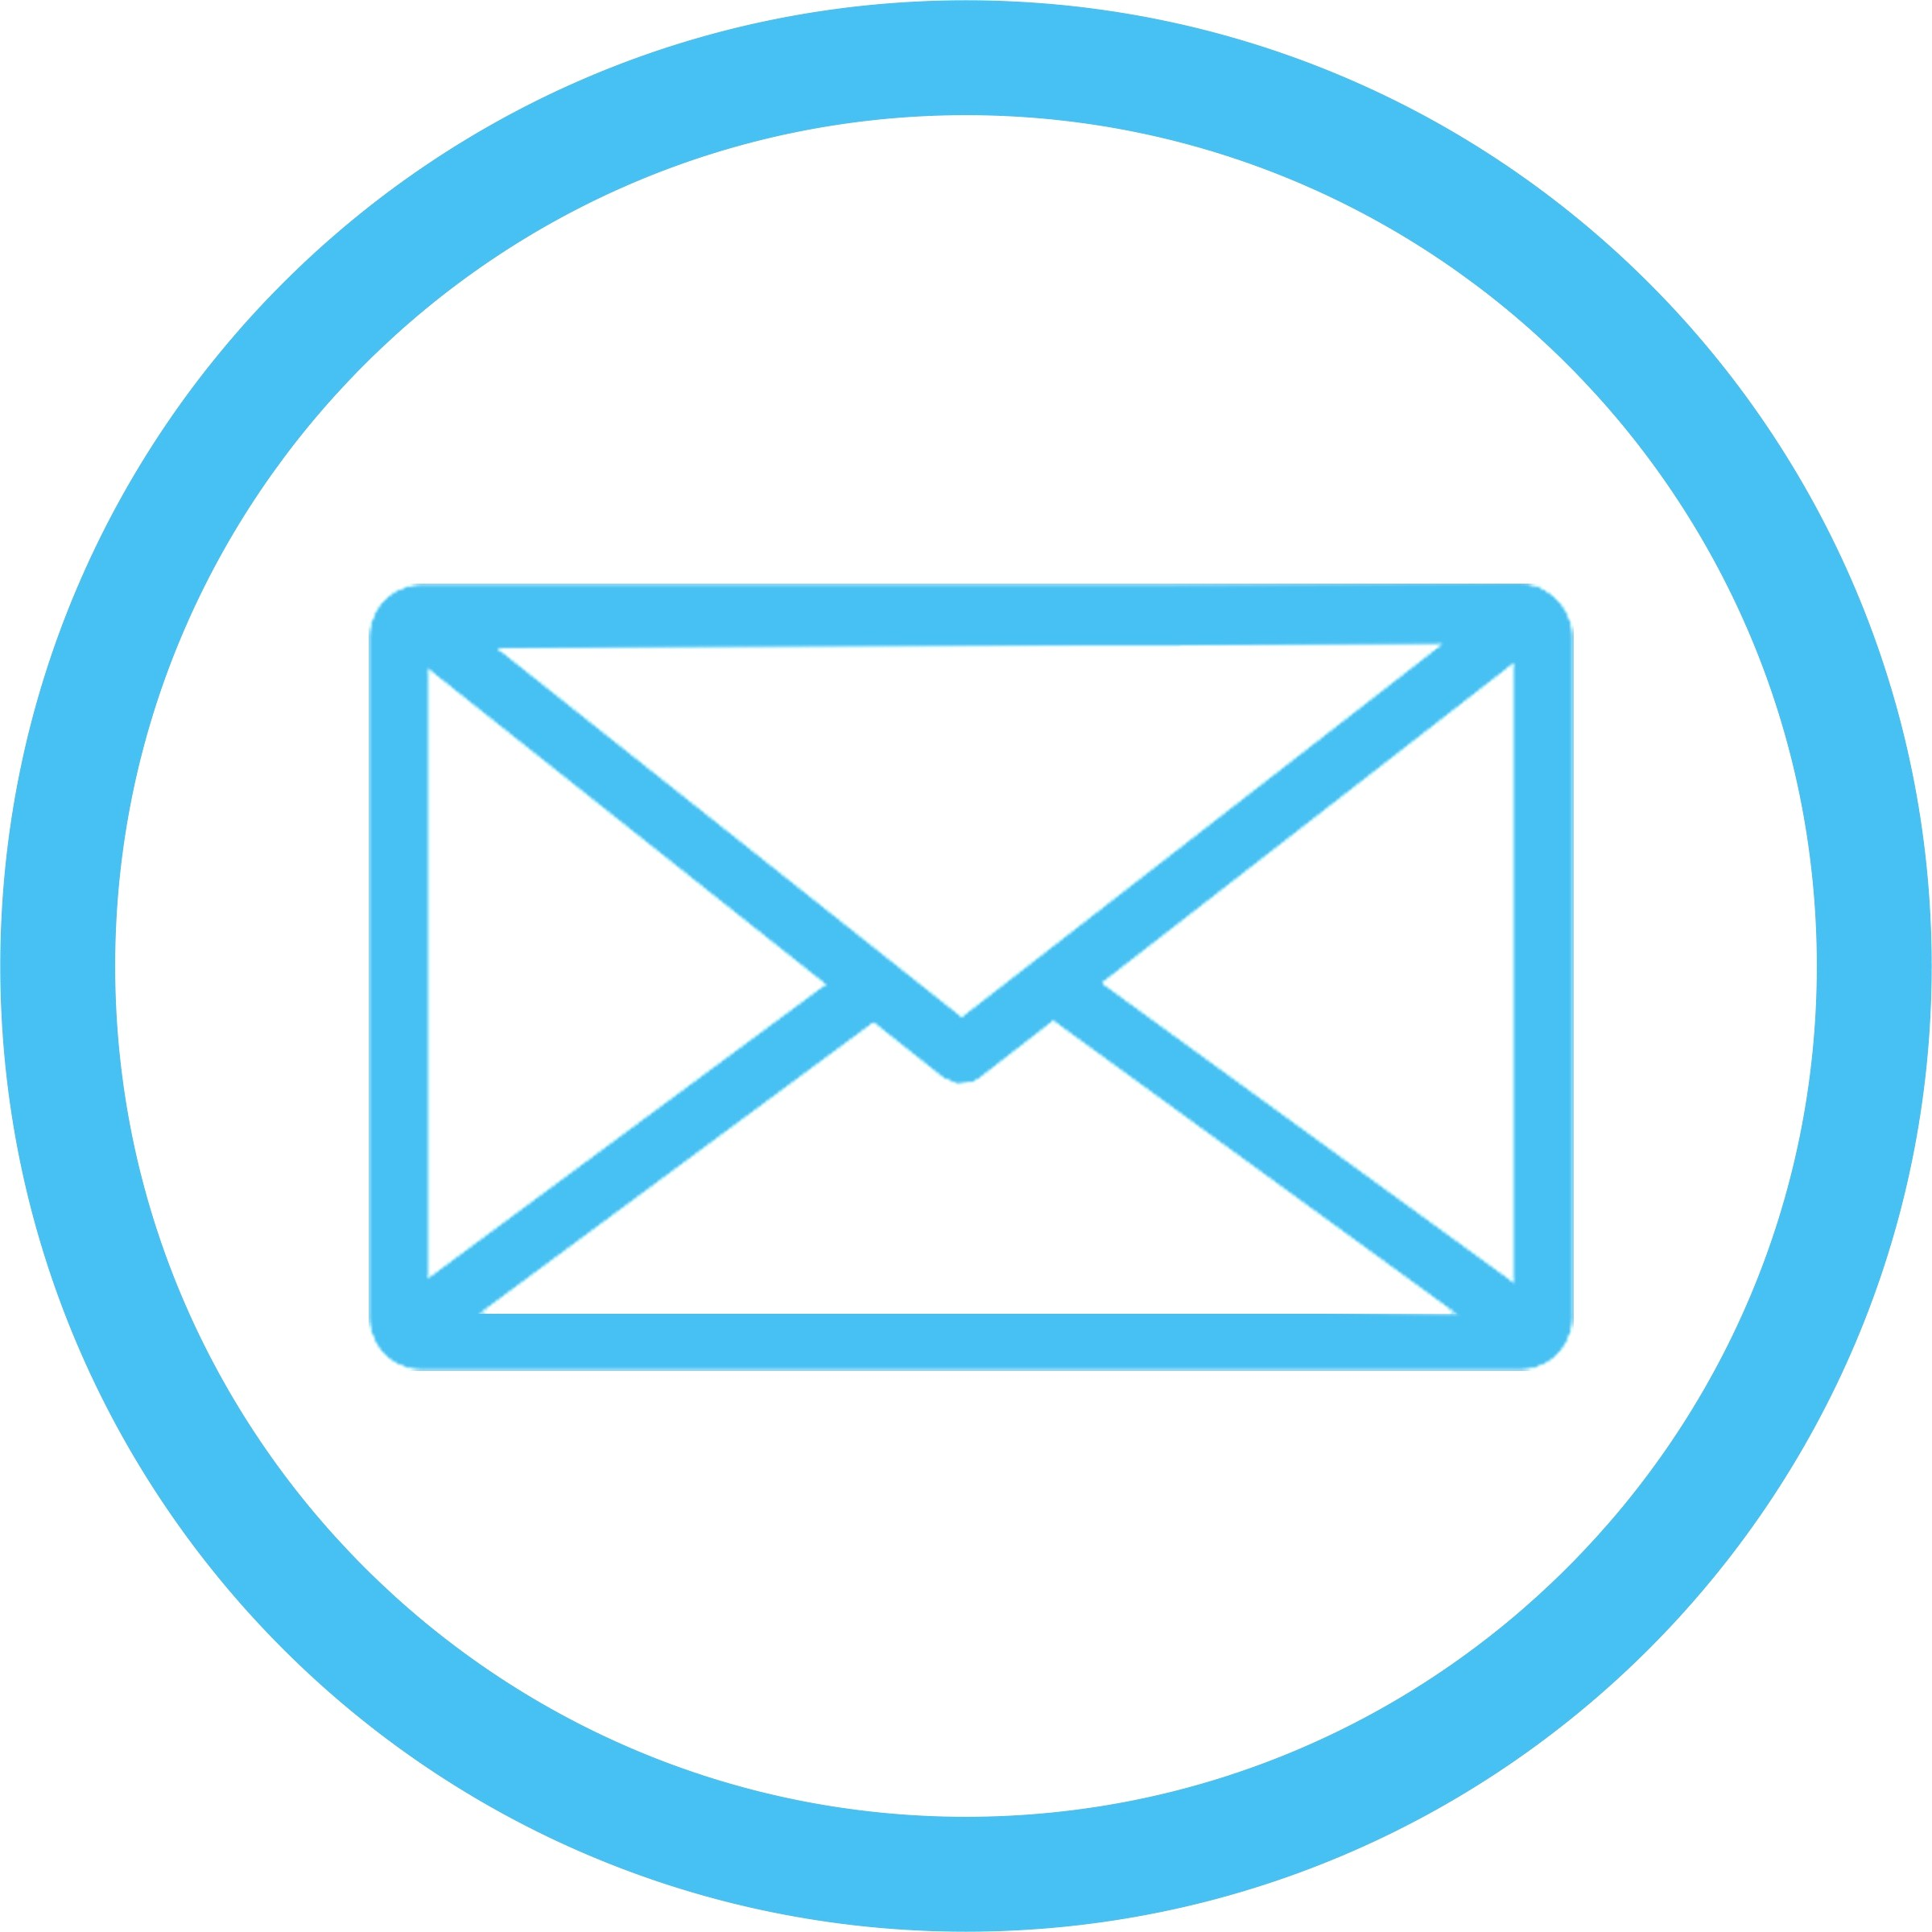 2400x2400 Email Icon Vector Clip Art For Web Contact And Business Newsletter